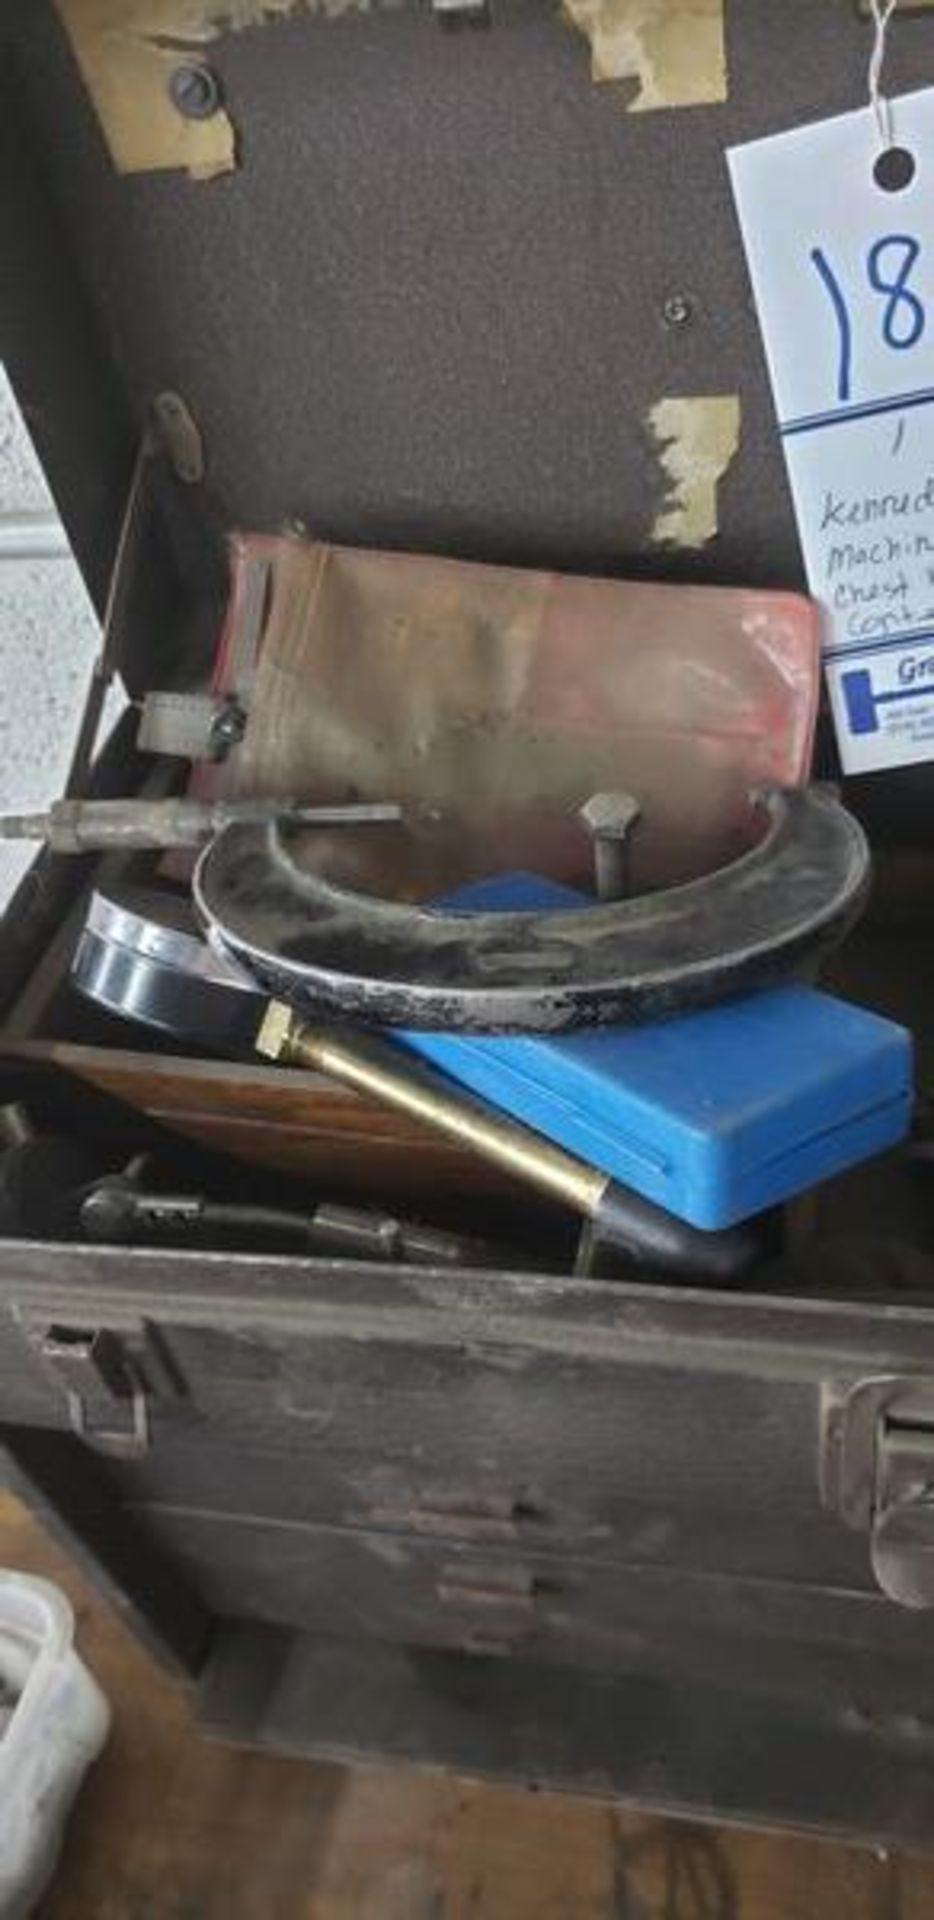 KENNEDY MACHINIST TOOL CHEST WITH CONTENTS - Image 4 of 11